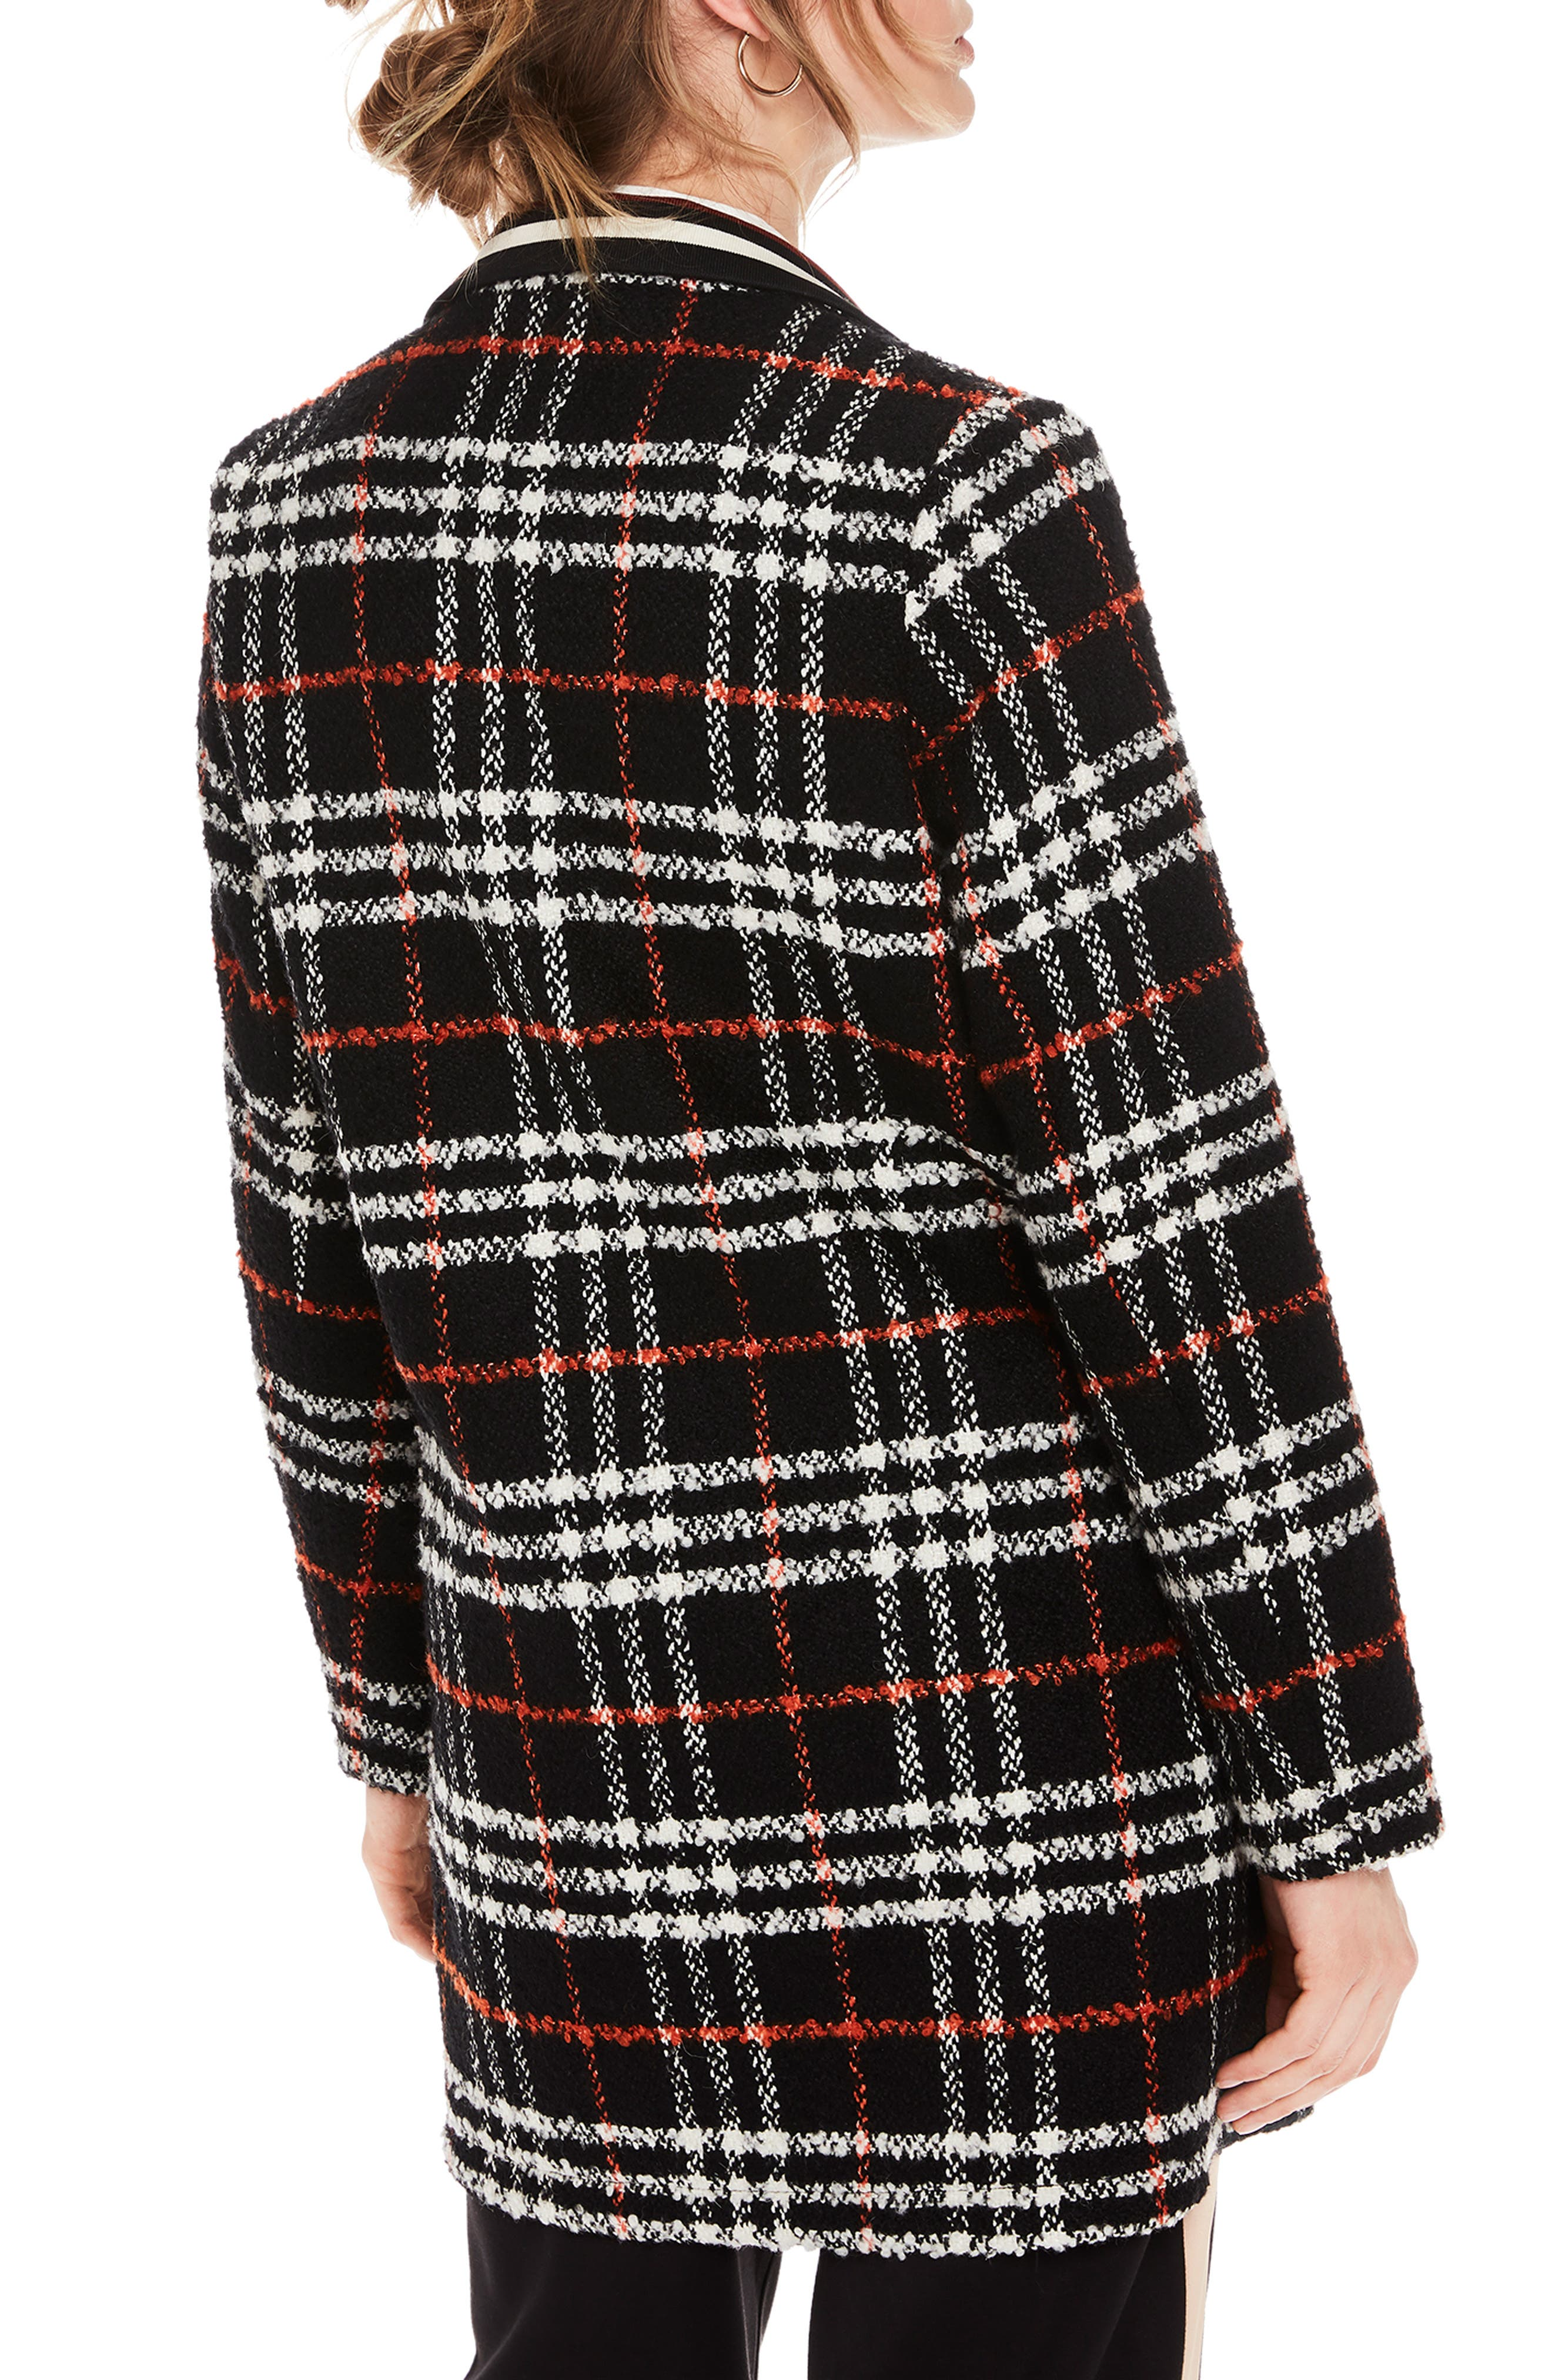 Bonded Wool Blend Jacket,                             Alternate thumbnail 2, color,                             BLACK AND RED PLAID